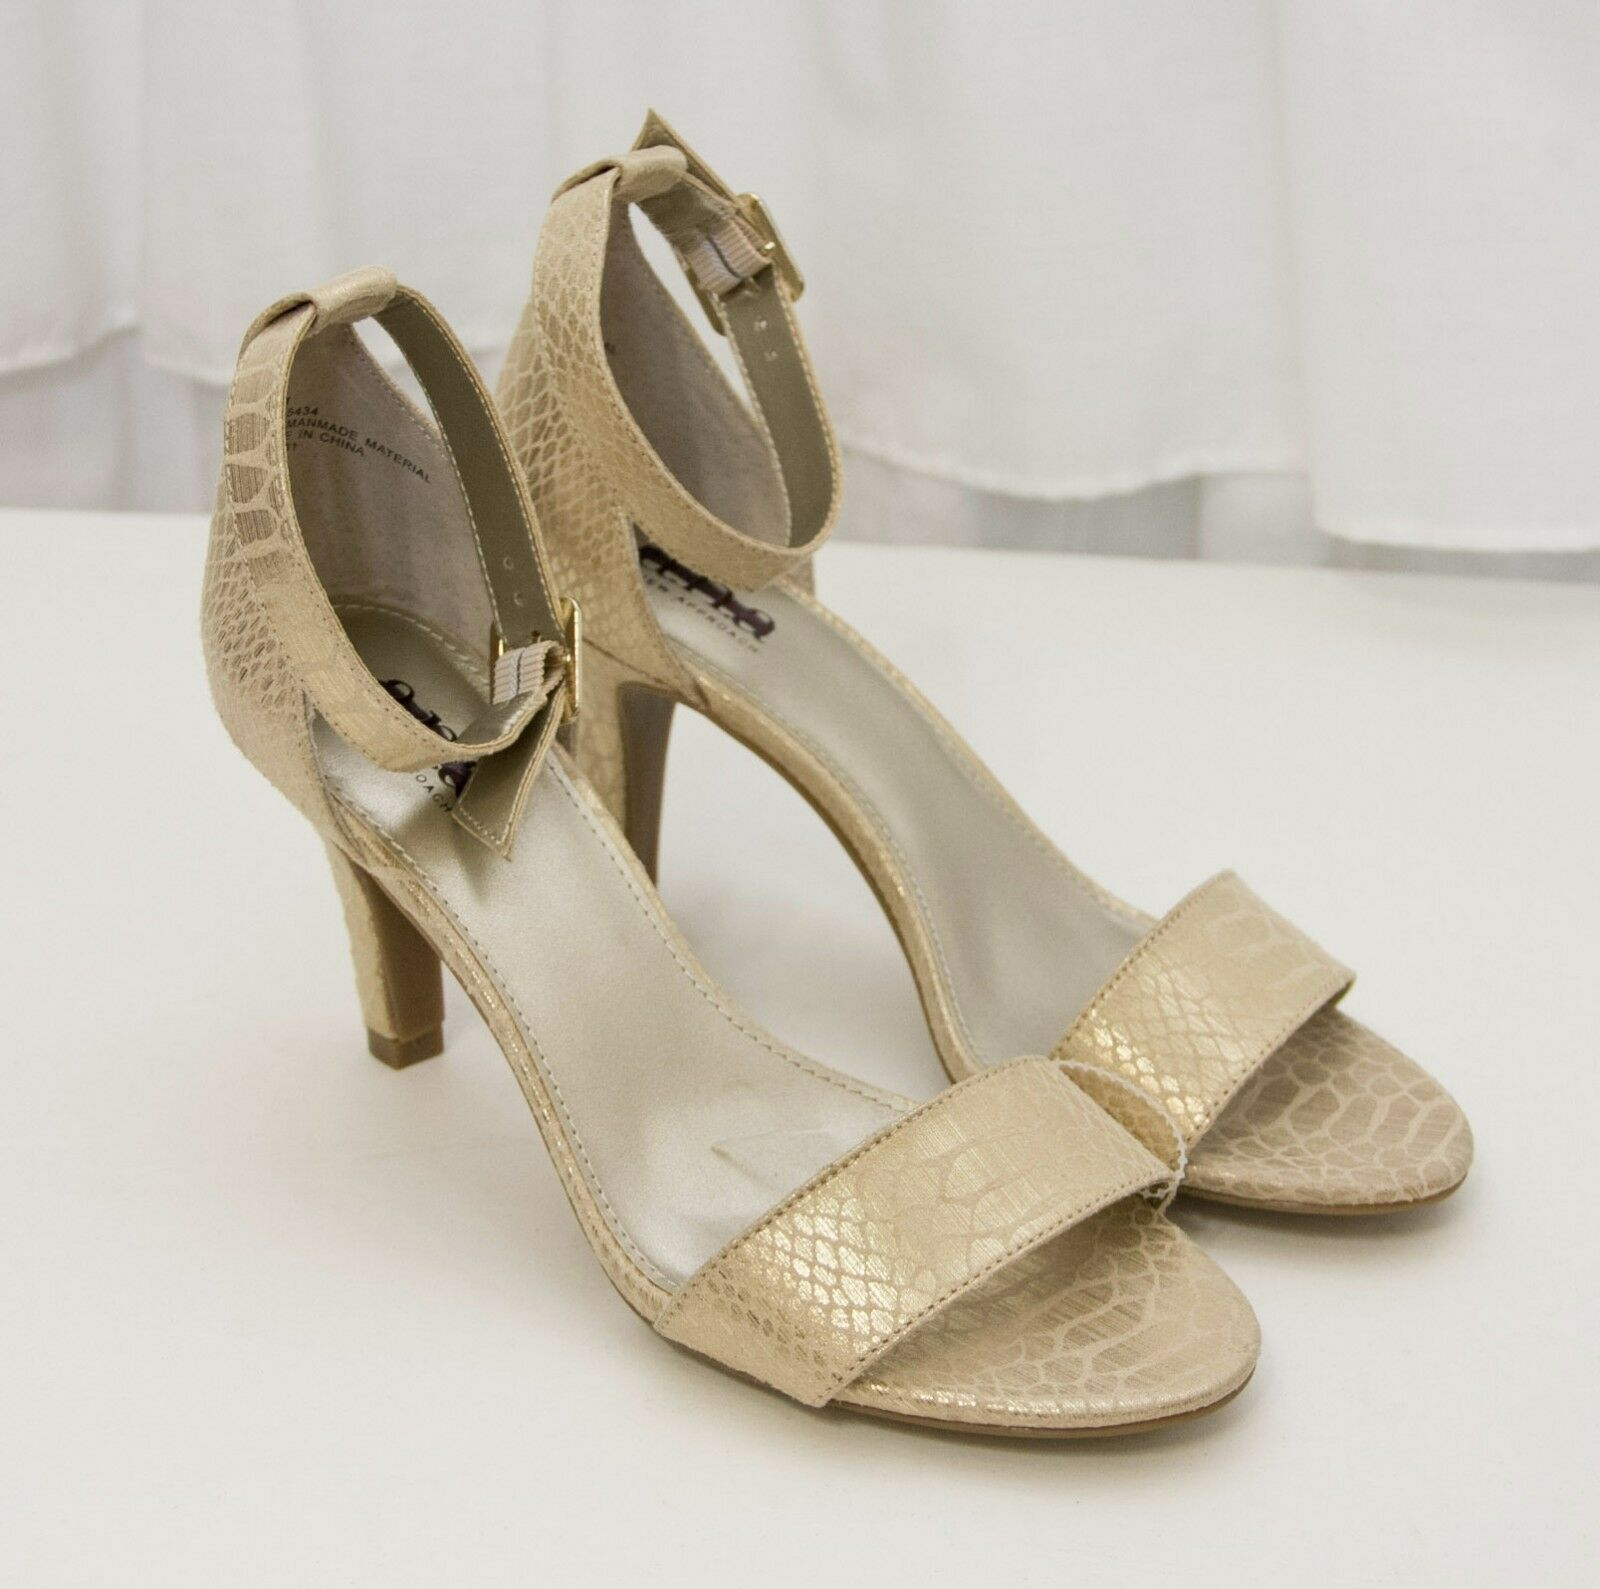 A.N.A Gold Metallic Animal Textured Heels Size 6.5 M Open Toe Dress Shoes NEW